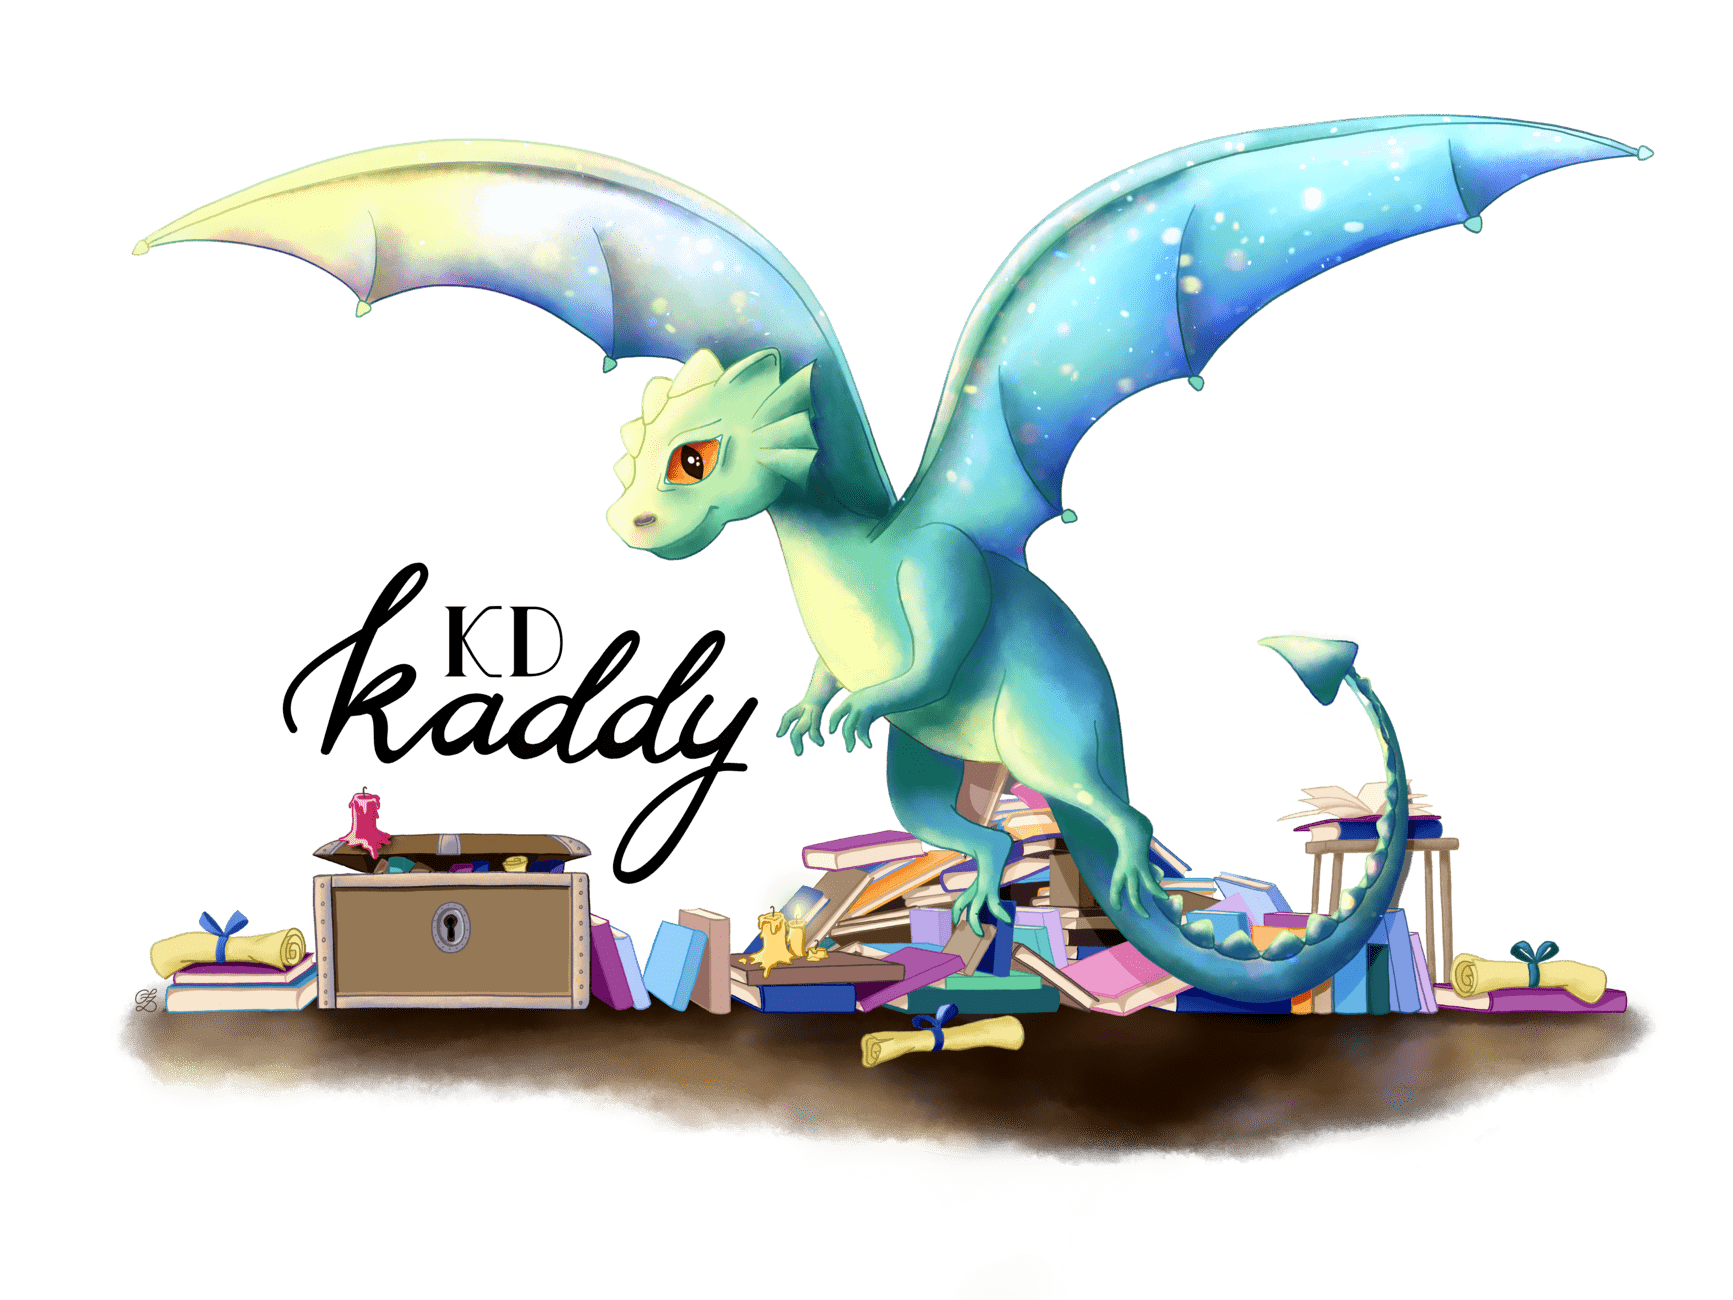 Kaddy KD, Illustration. Webbanner, Sandra Zabel, Drache, dragon illustration,